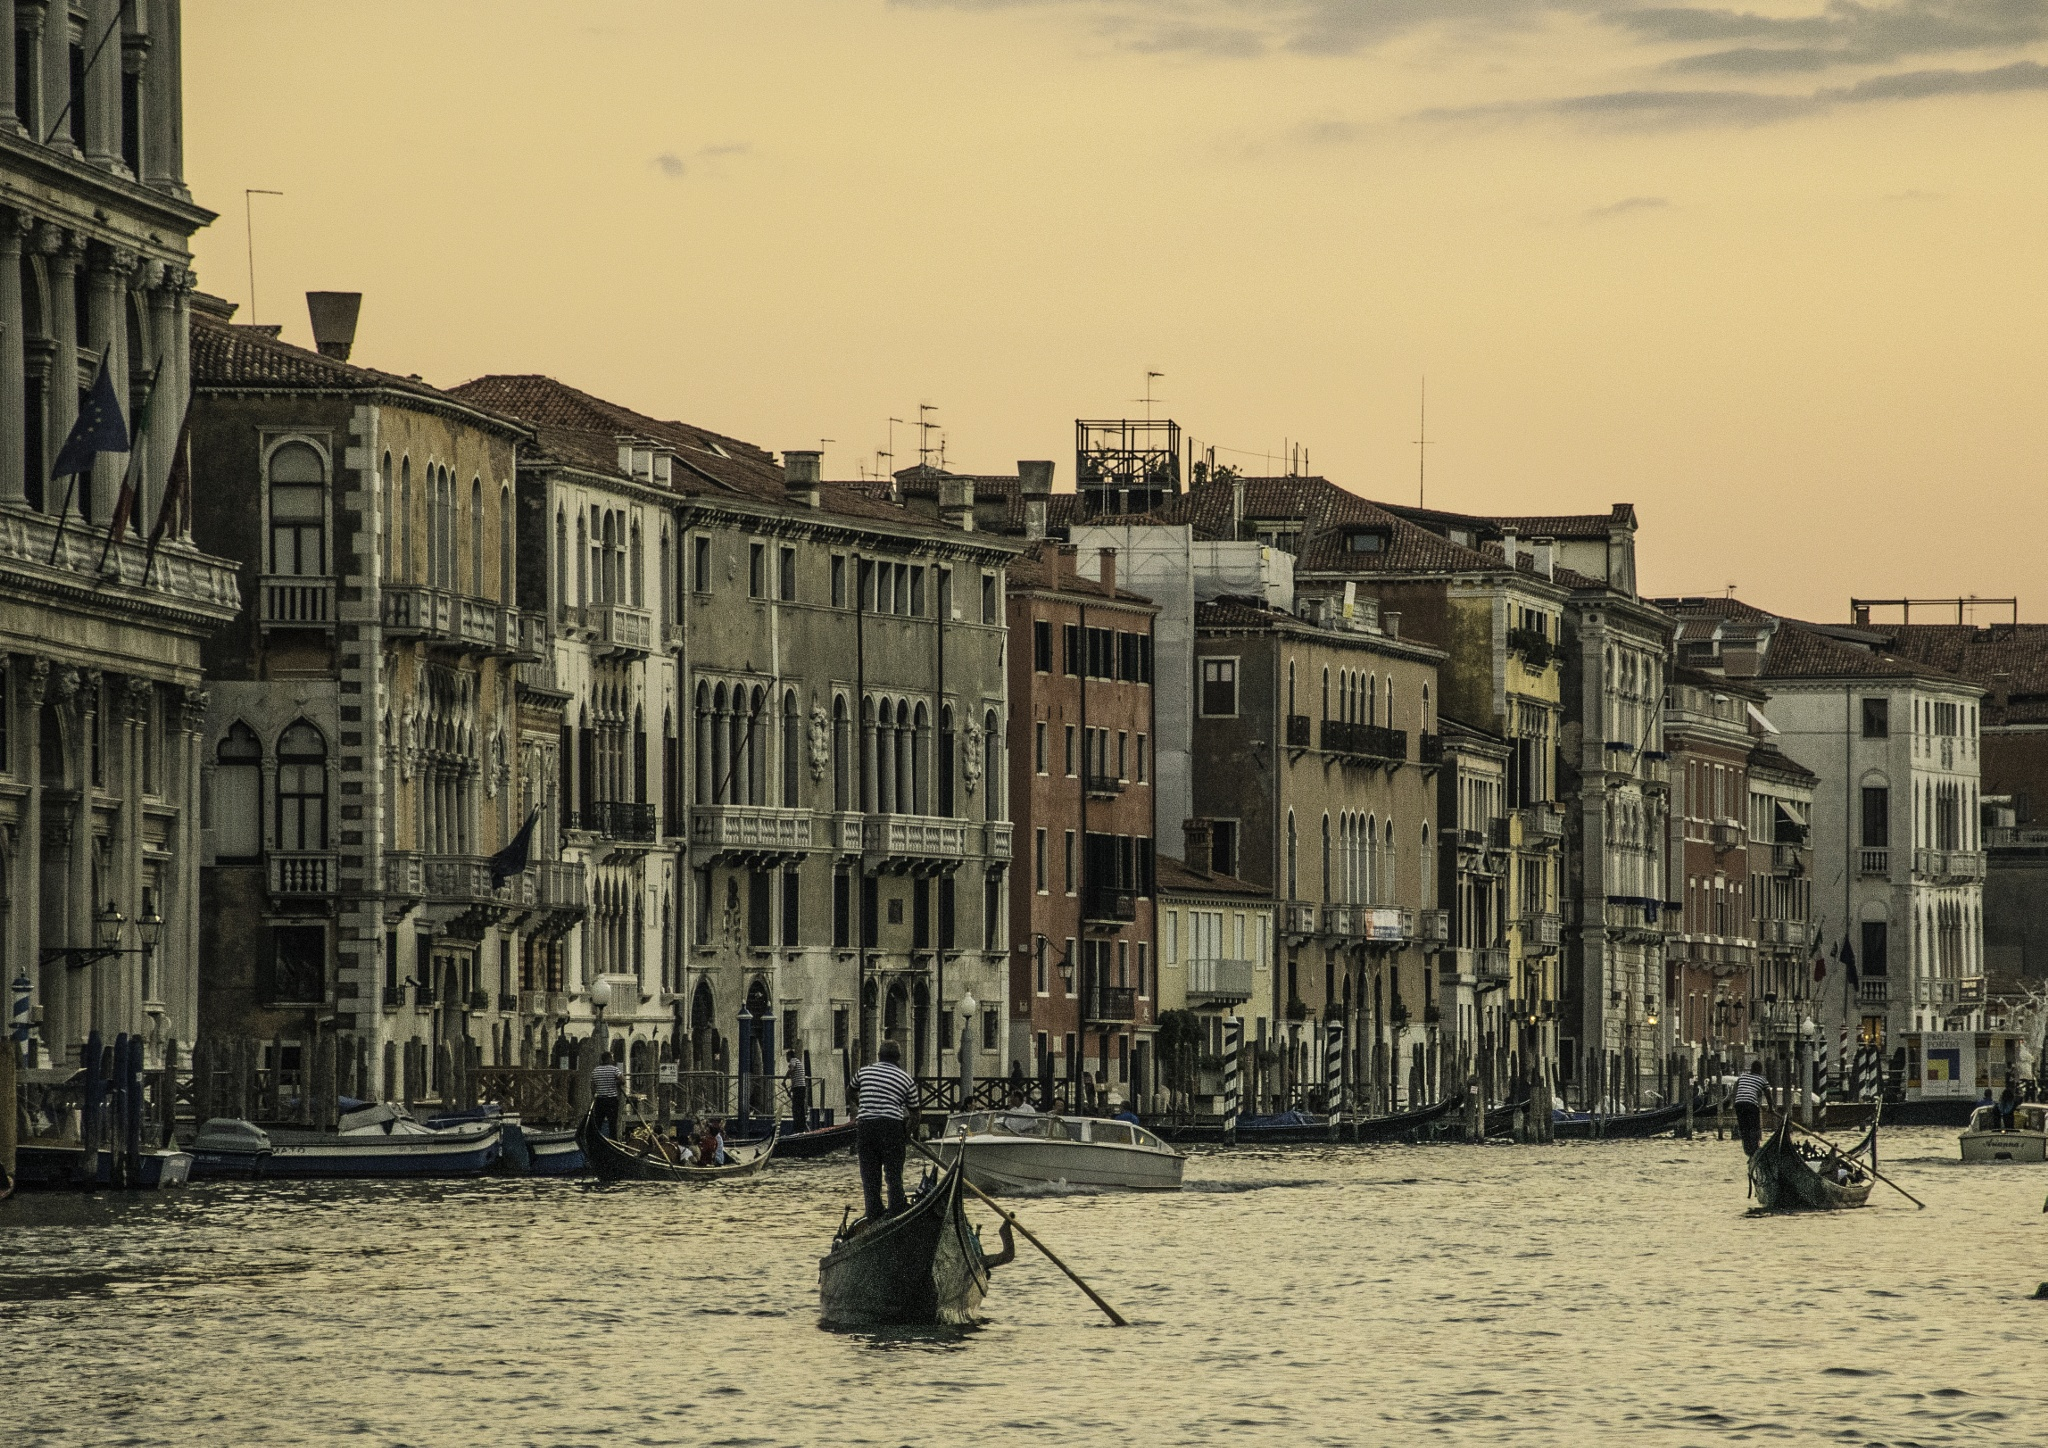 Venice - sunset on the Grand Canal by jimo